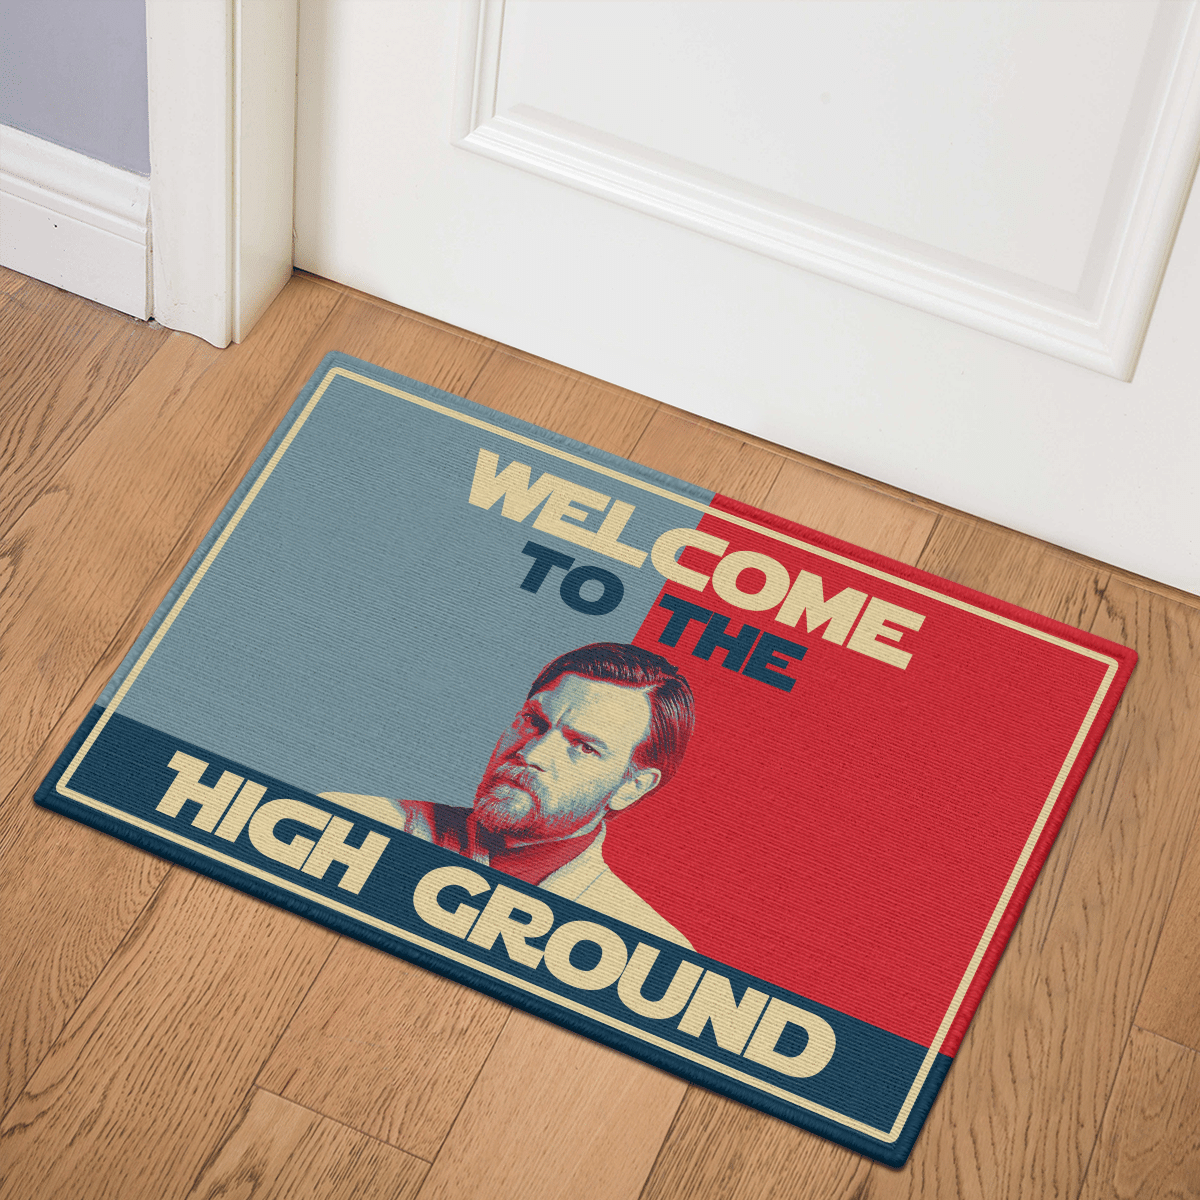 Welcome to the high ground doormat